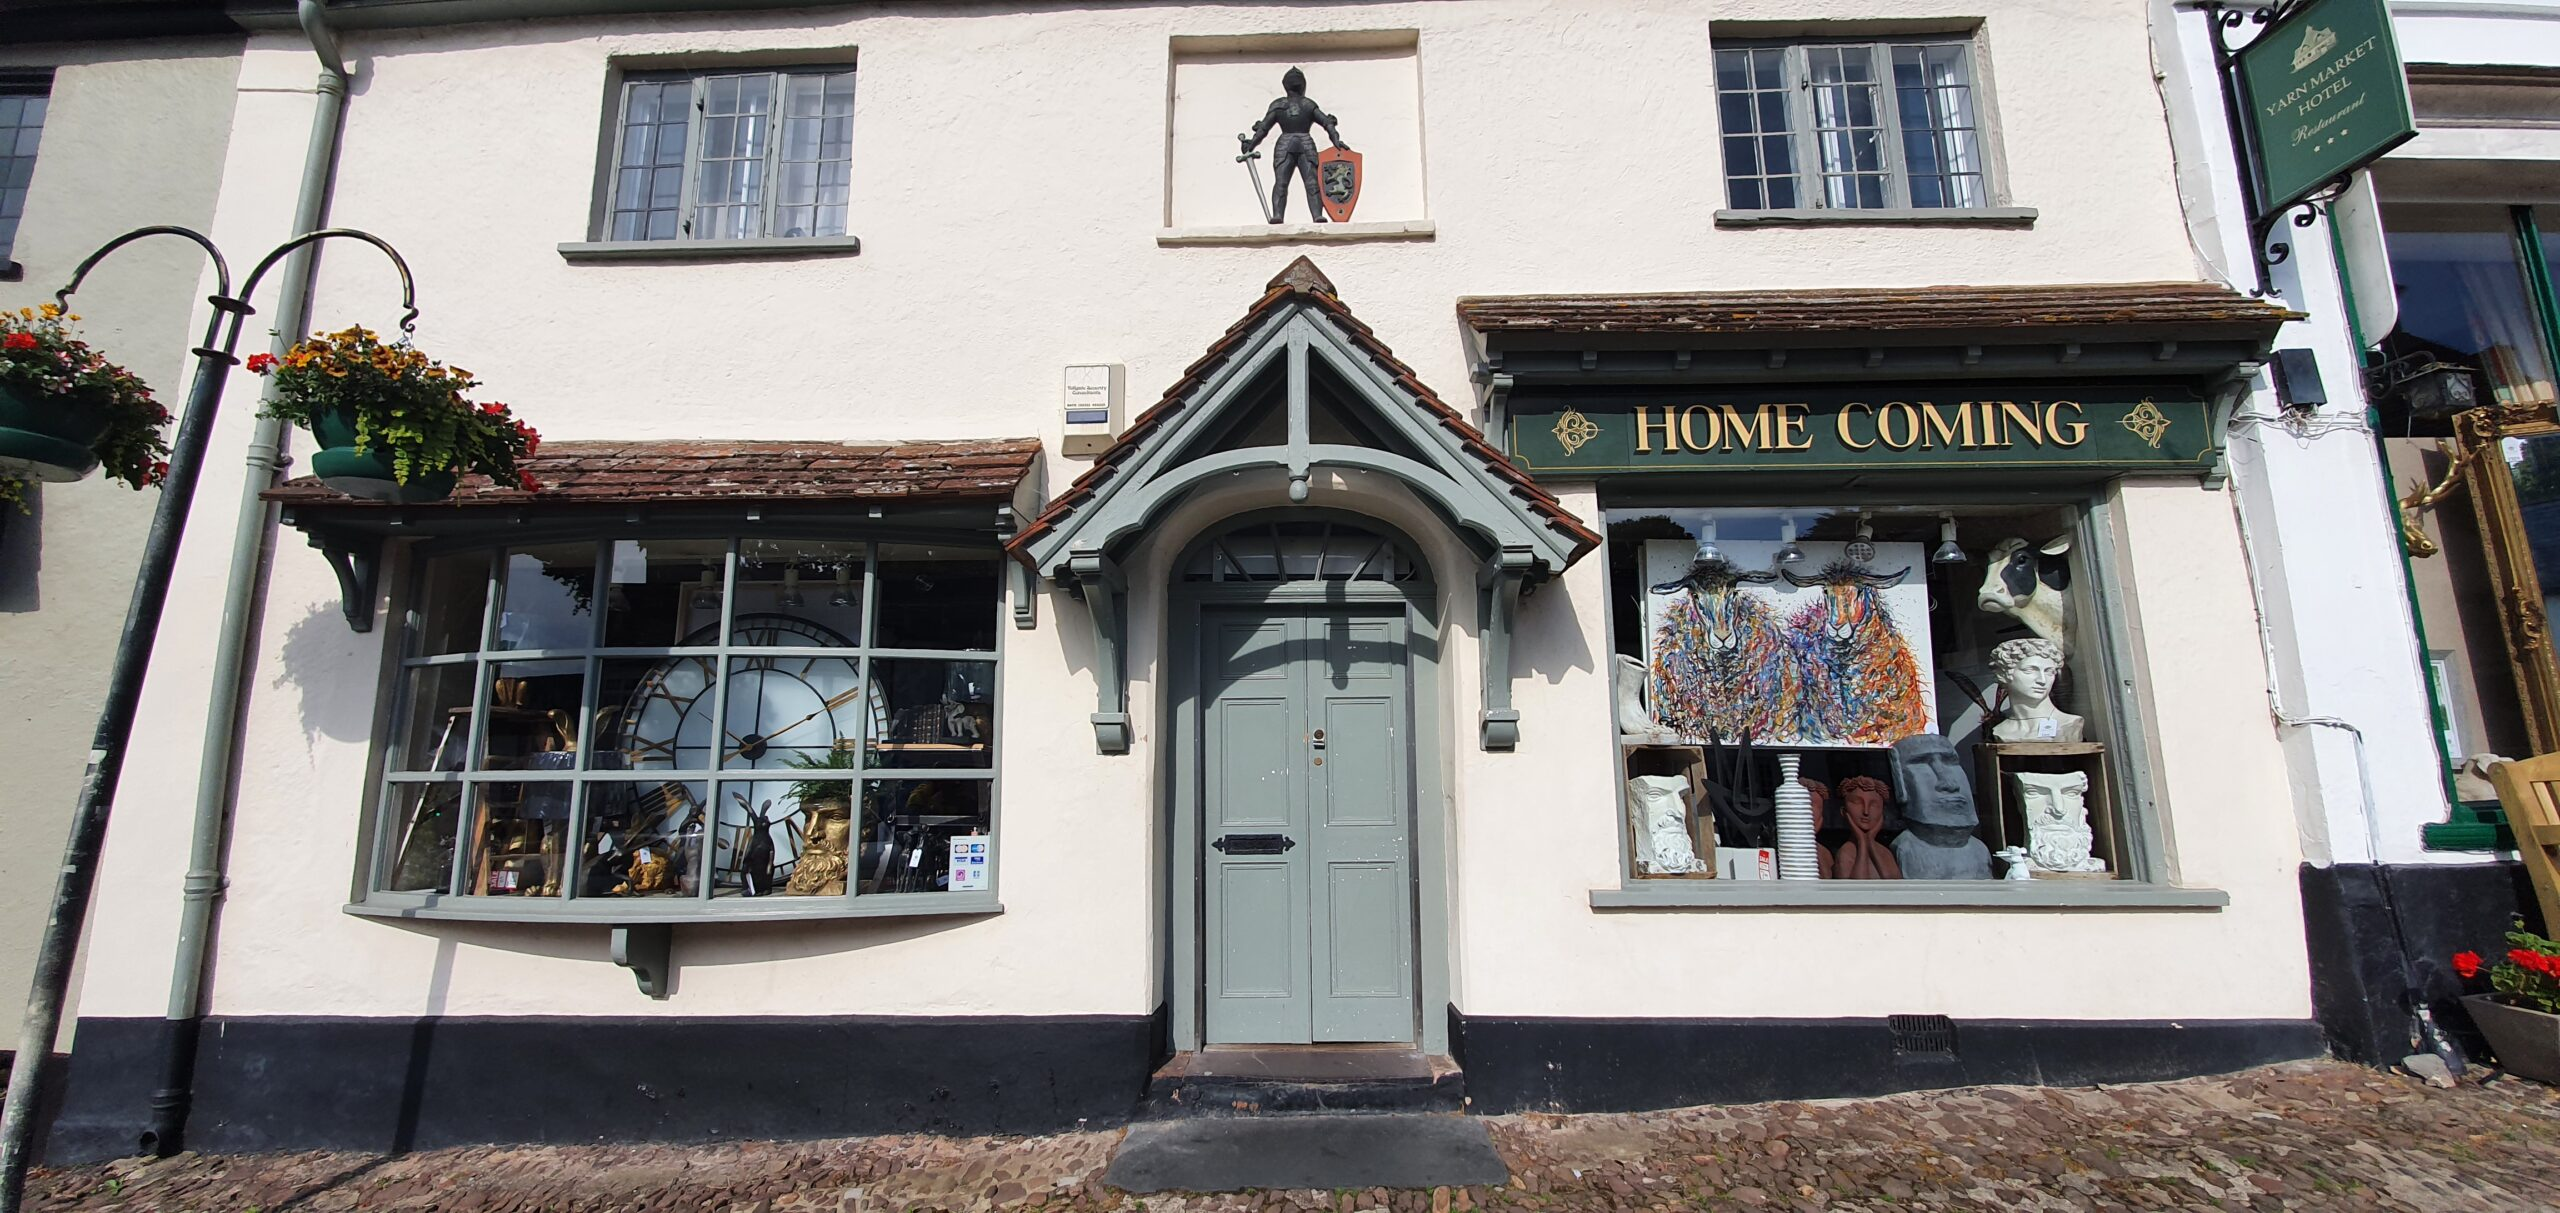 Home Coming Dunster